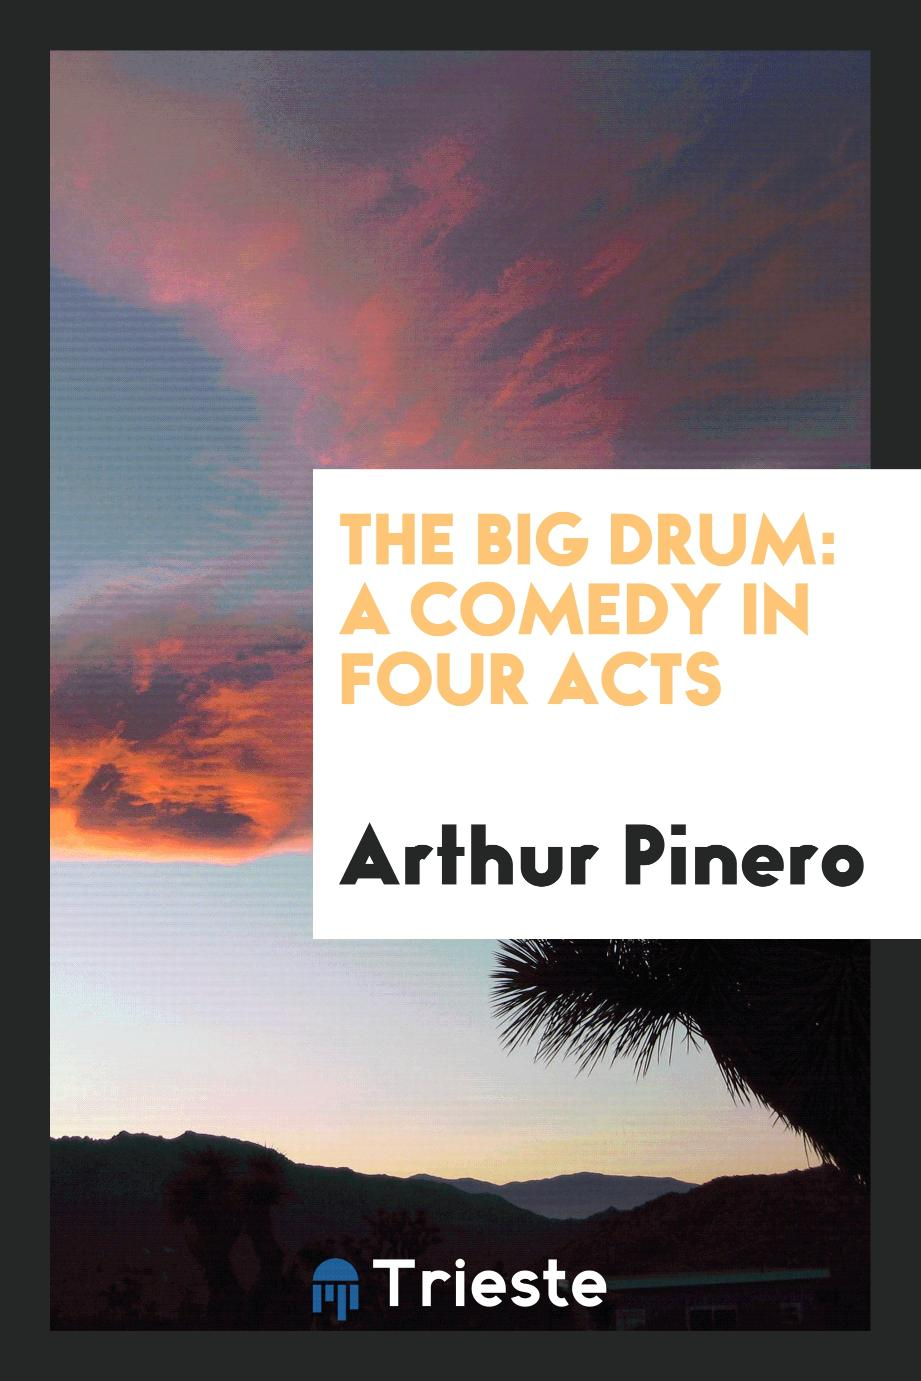 Arthur Pinero - The big drum: a comedy in four acts